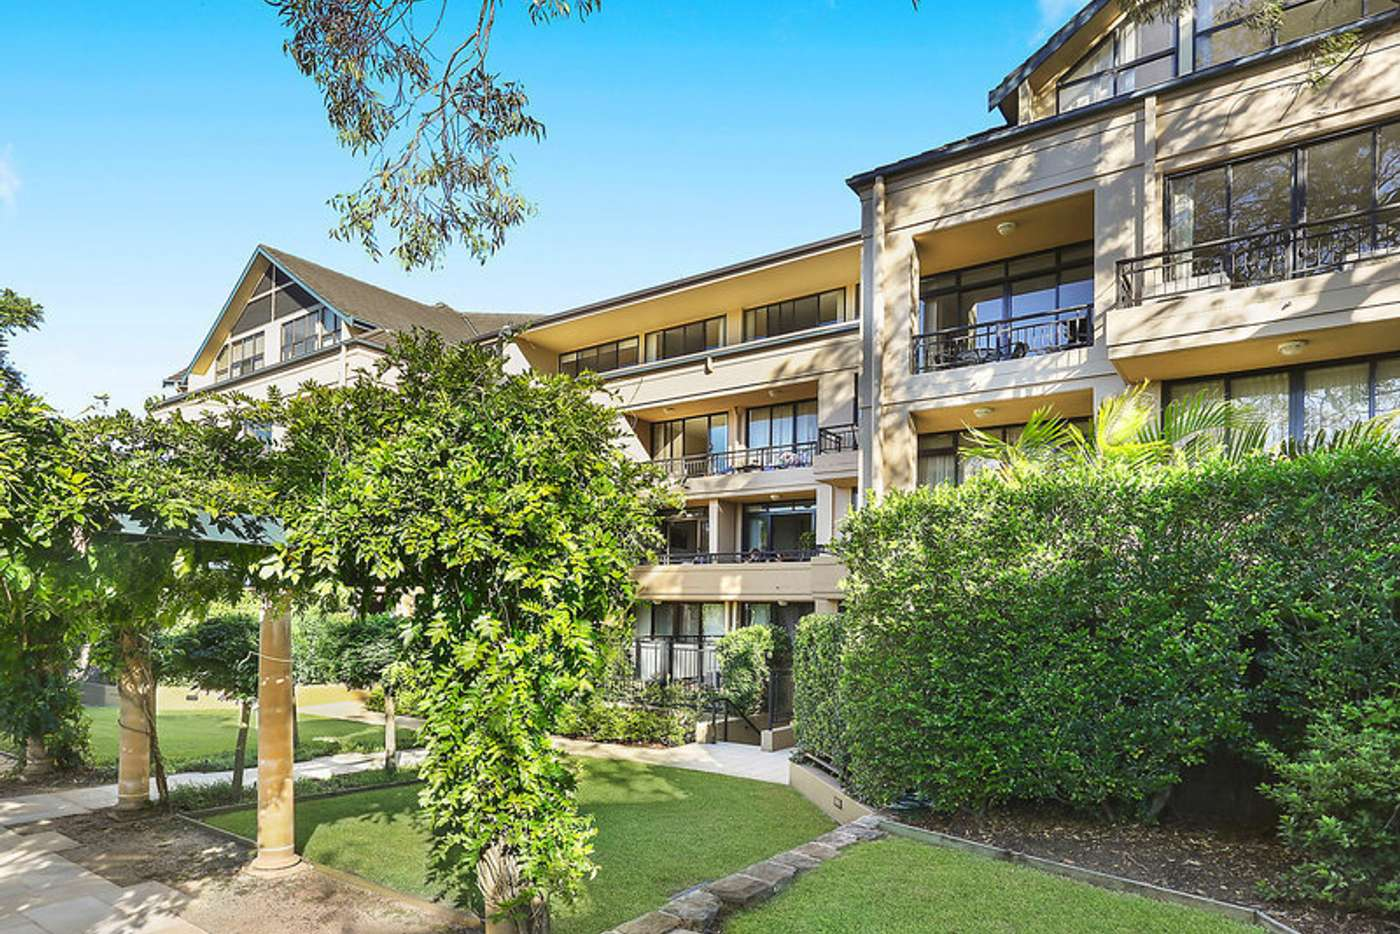 Main view of Homely apartment listing, 27/232-240 Ben Boyd Road, Cremorne NSW 2090